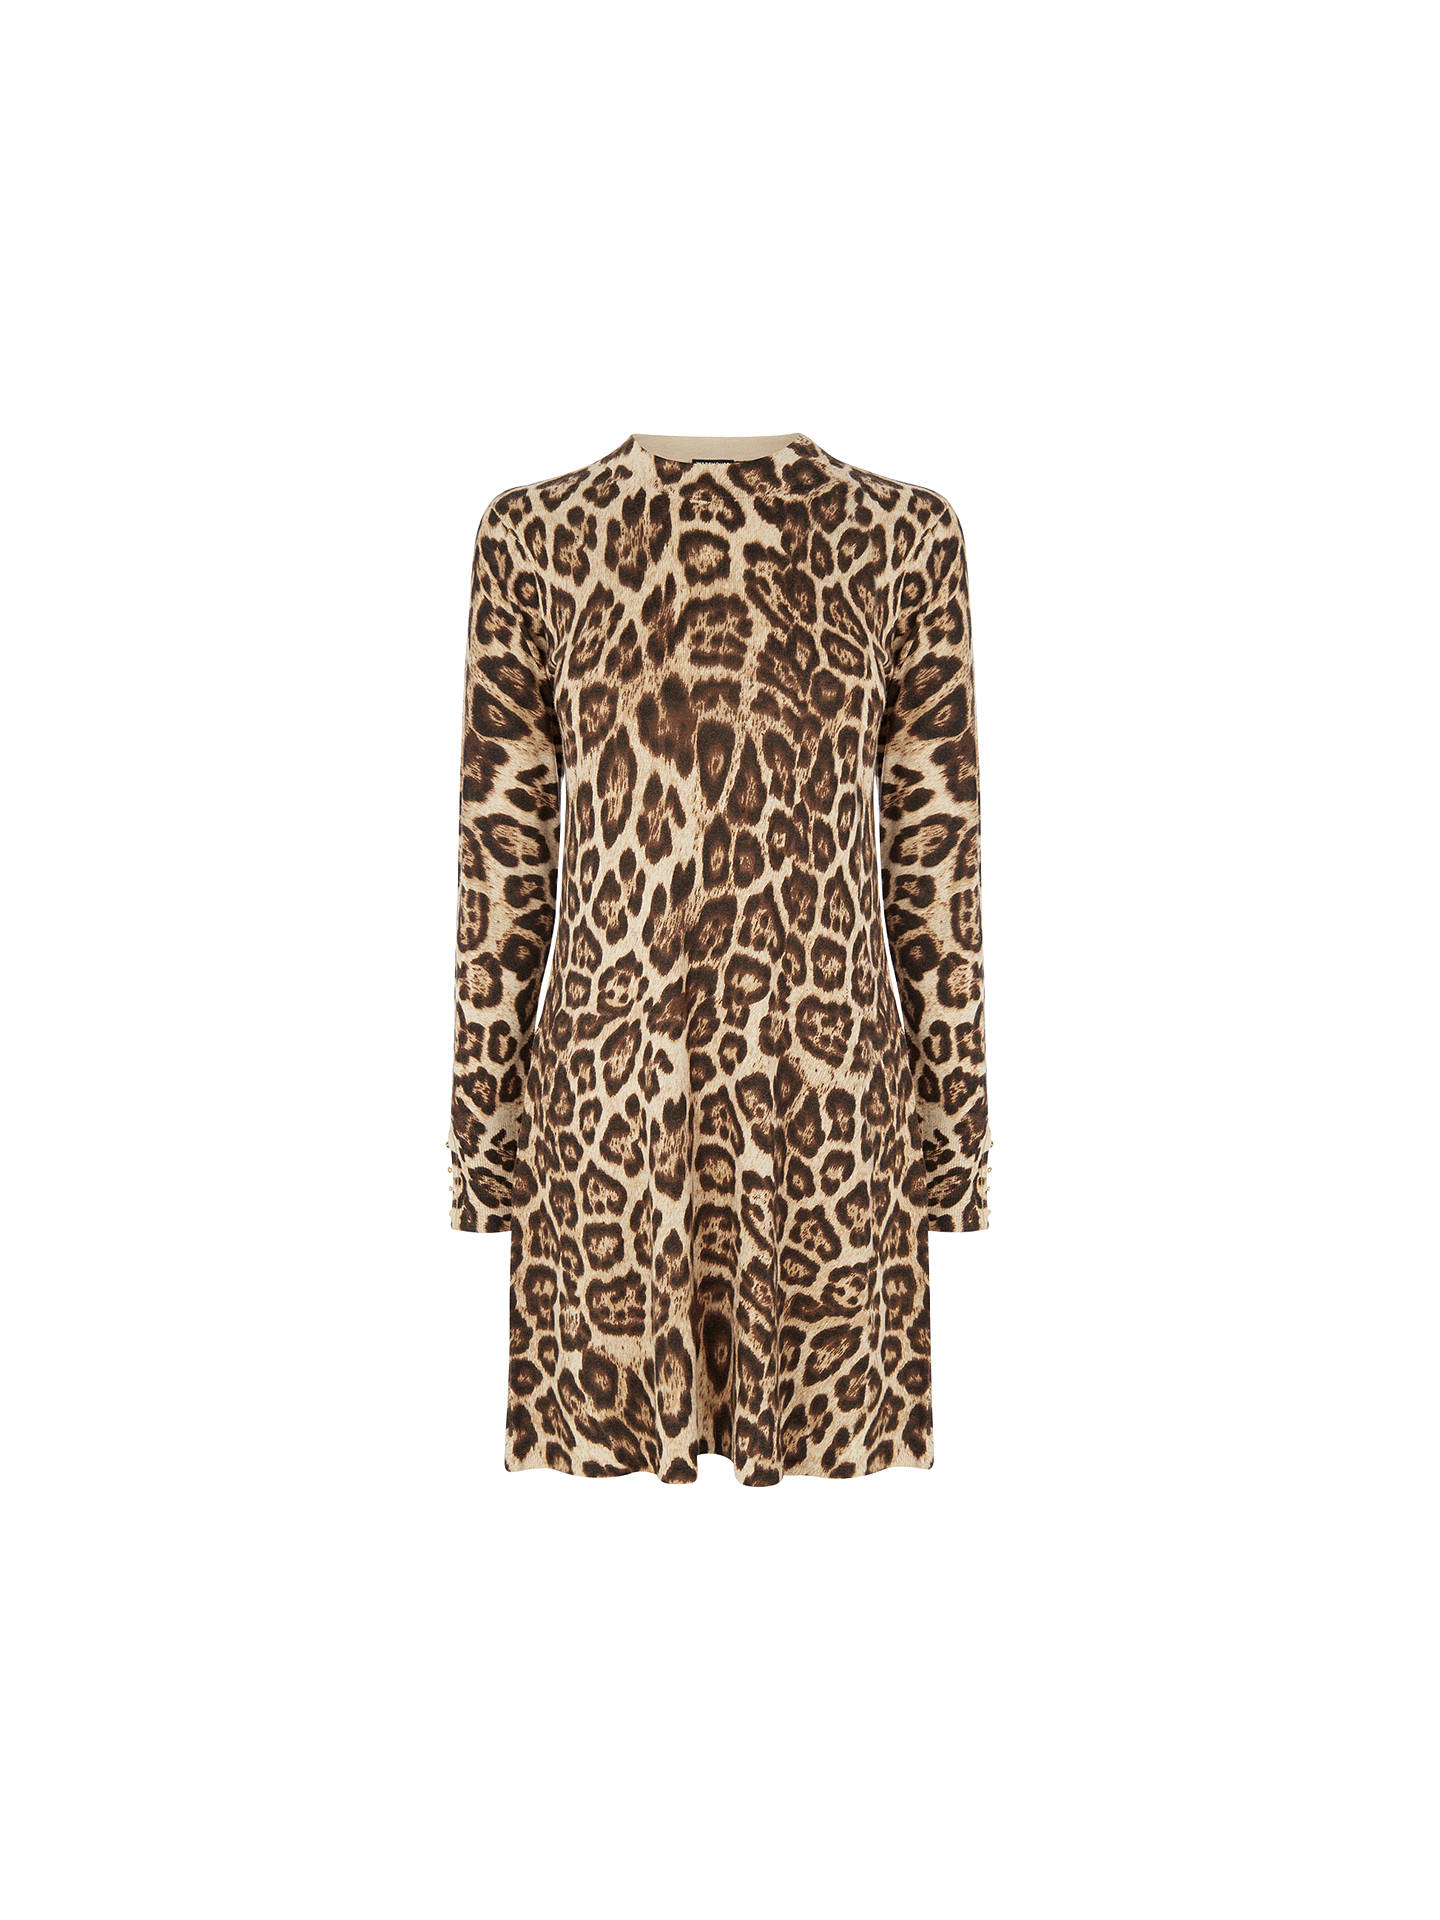 BuyWarehouse Animal Print Swing Dress 94ba9cef0